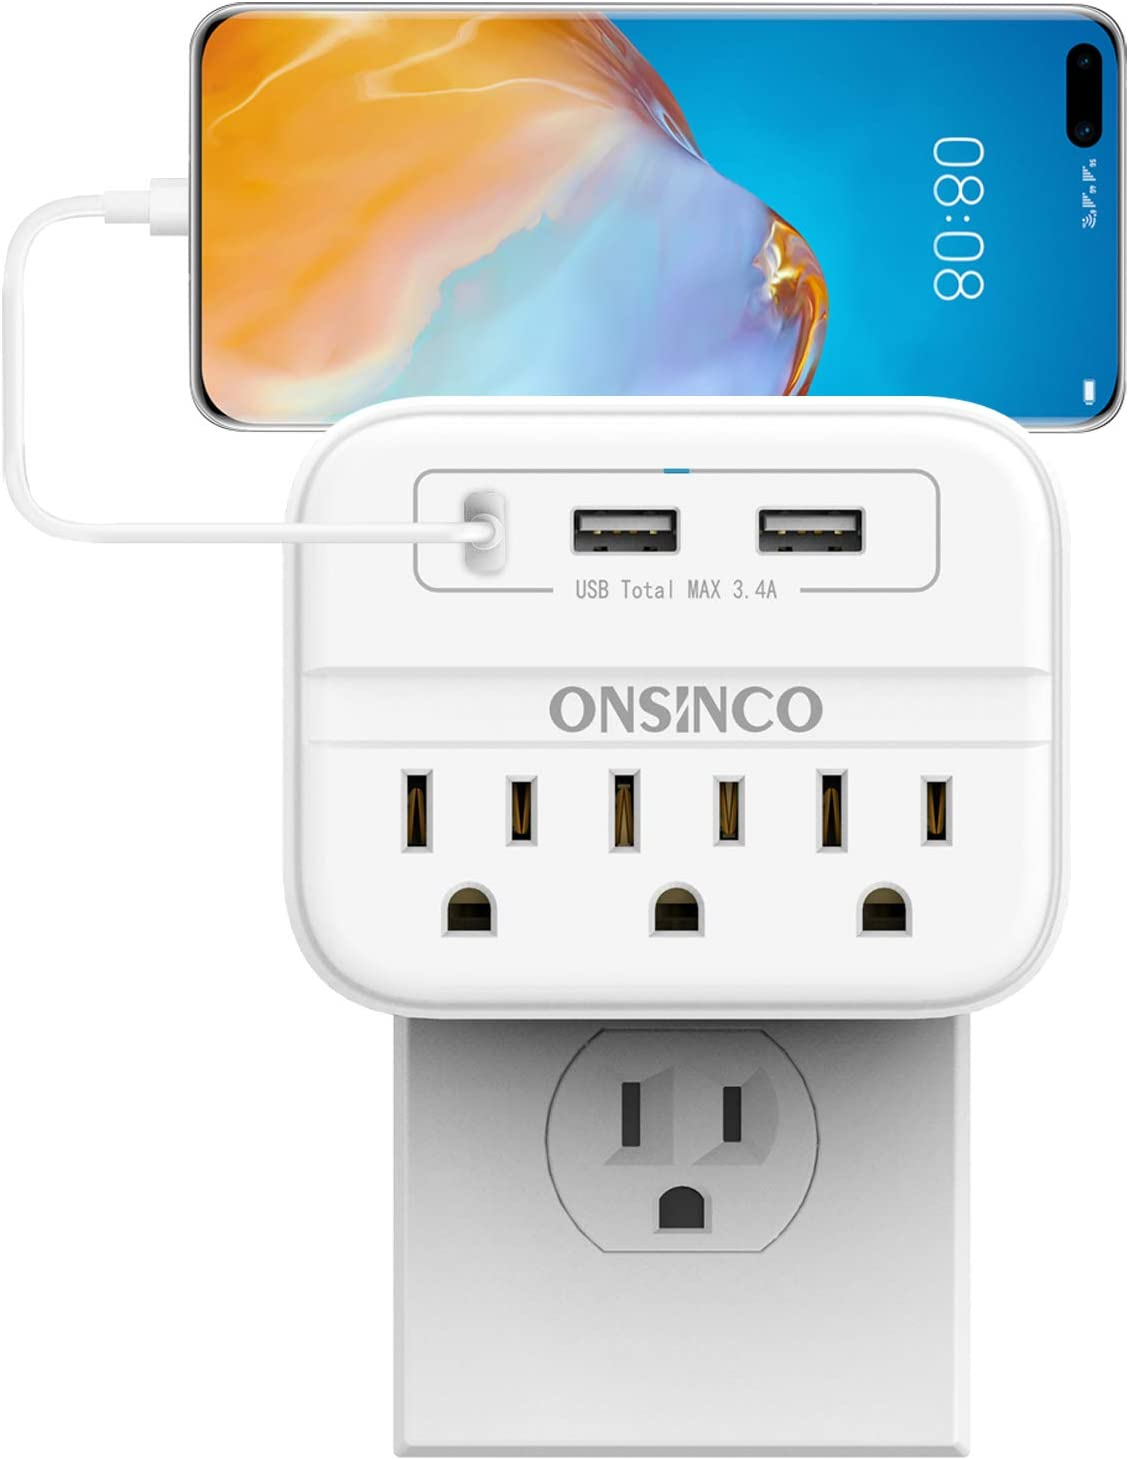 Wall Charger Outlet Extender, ONSINCO 3-Outlet Surge Protector Multi Plug Outlet with 3 USB Wall Charger(Total 3.4A), Outlet Adapter for Home, Office and School